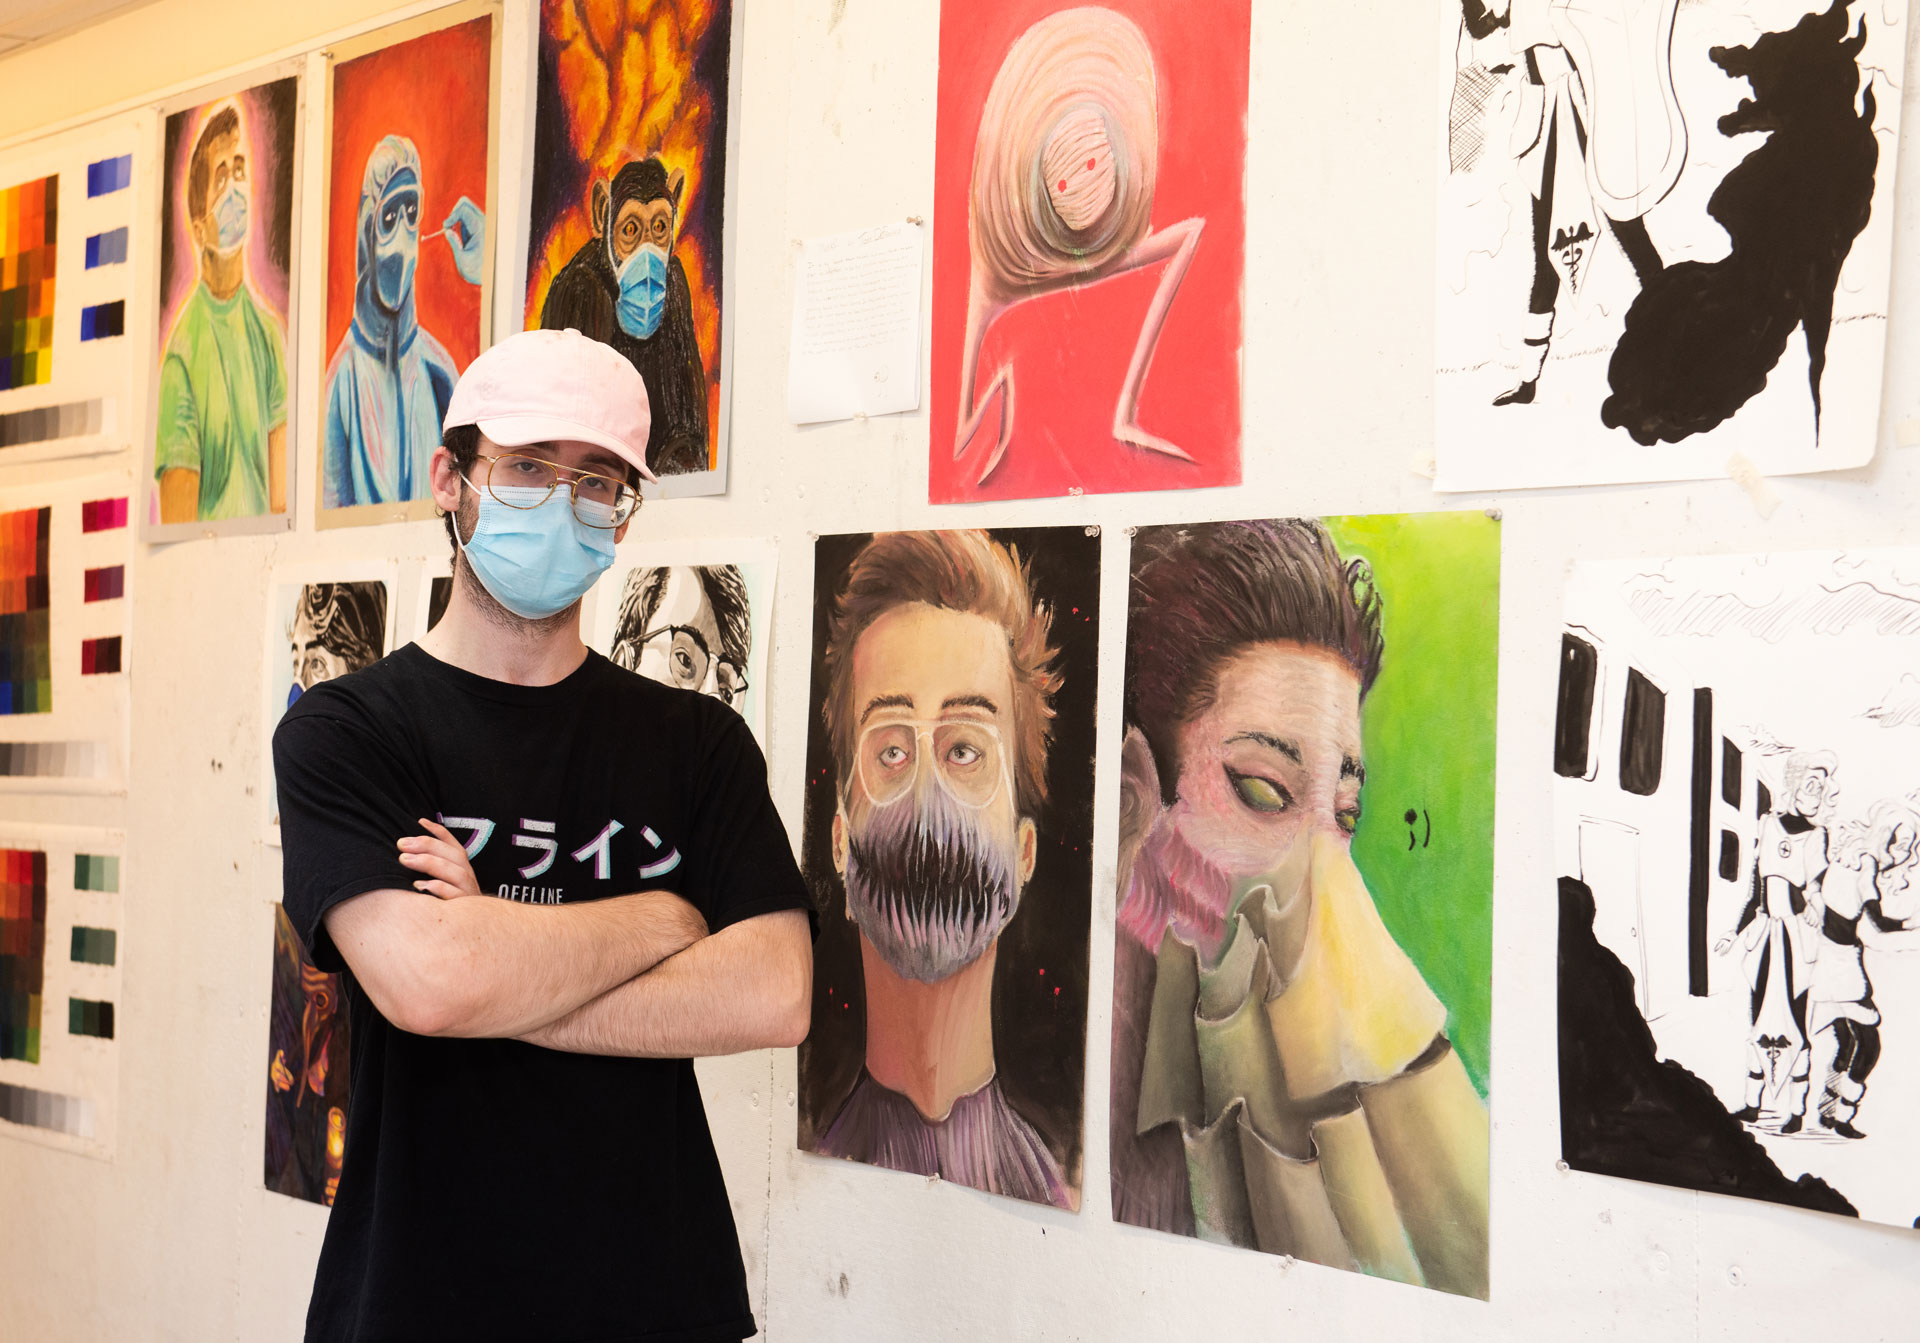 portrait of SCSU student artist Thomas DeFranco with his work